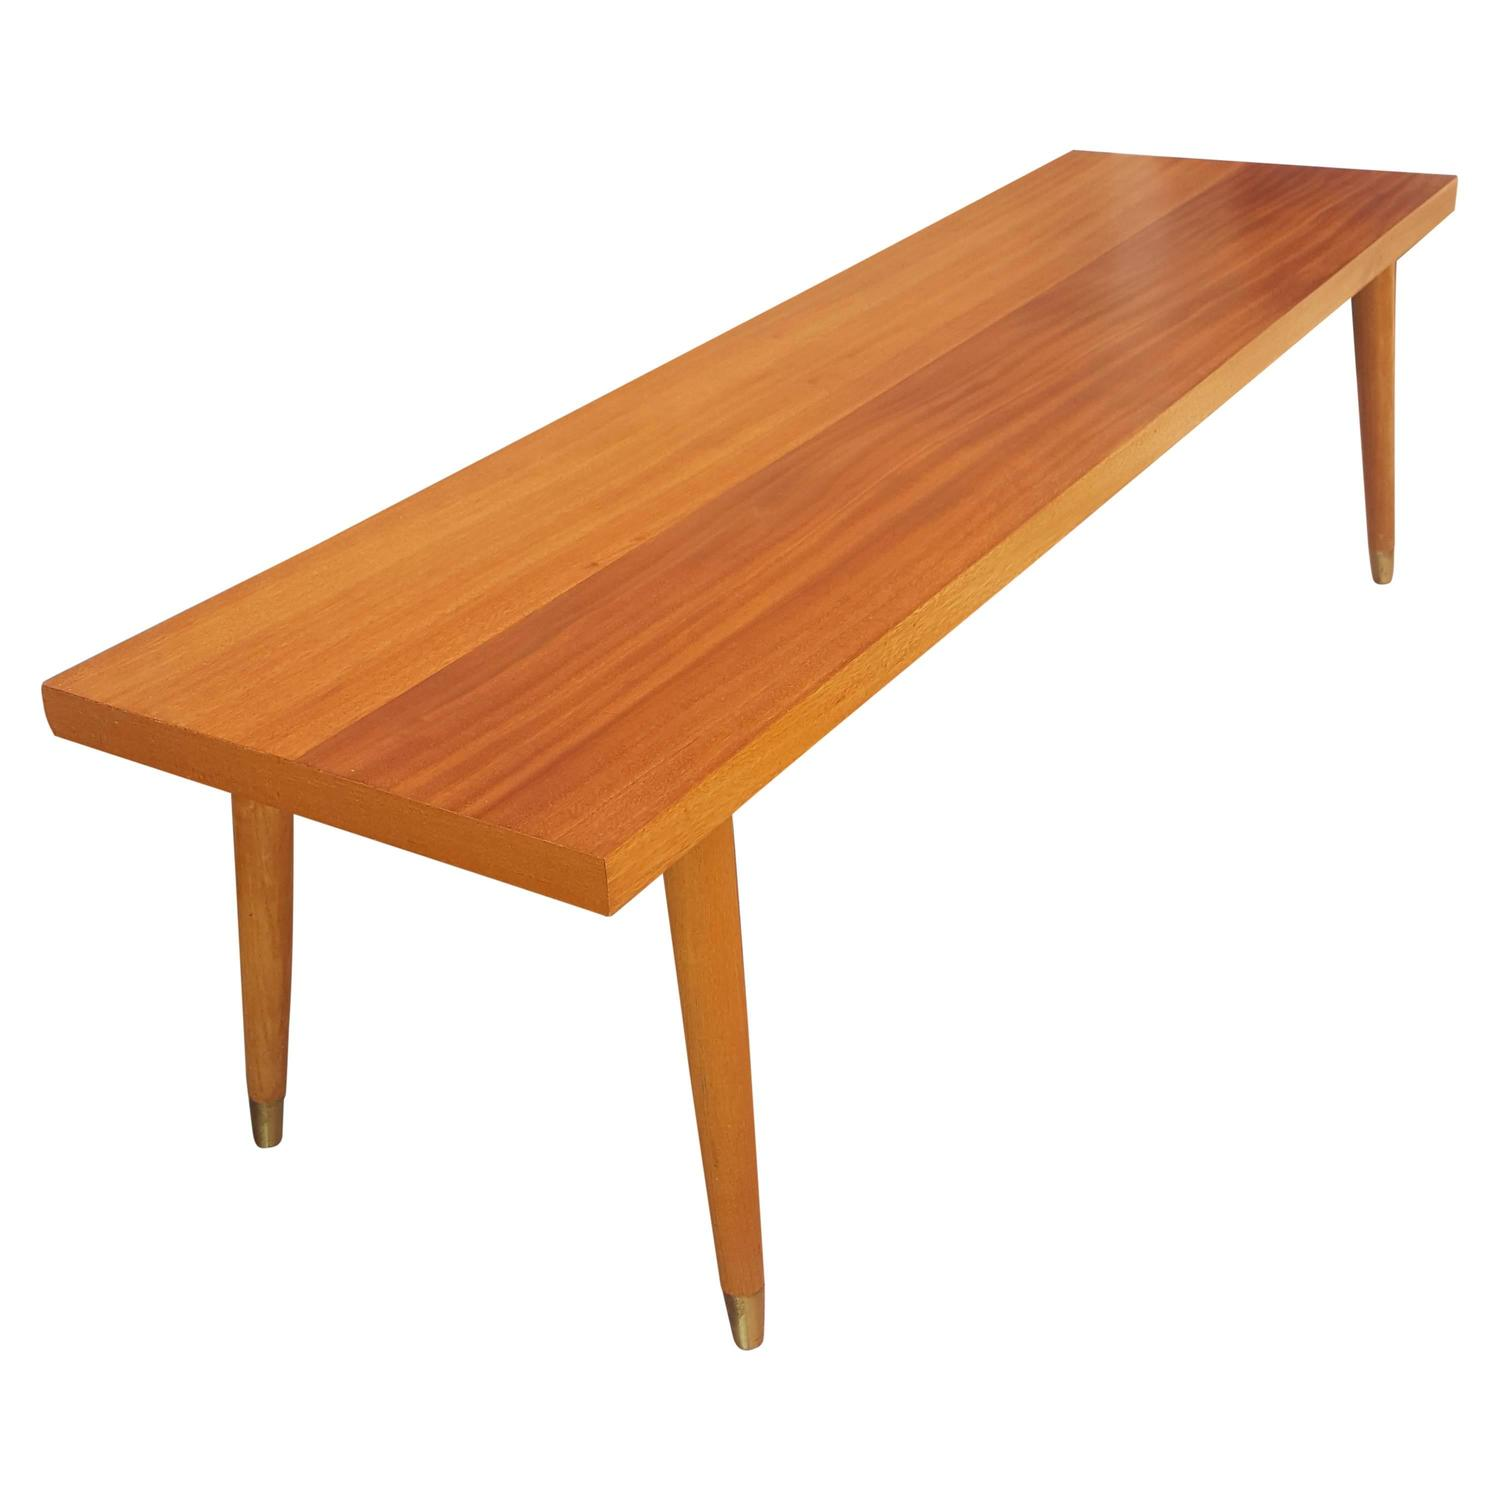 1960s american modern coffee table for sale at 1stdibs for Modern coffee table for sale